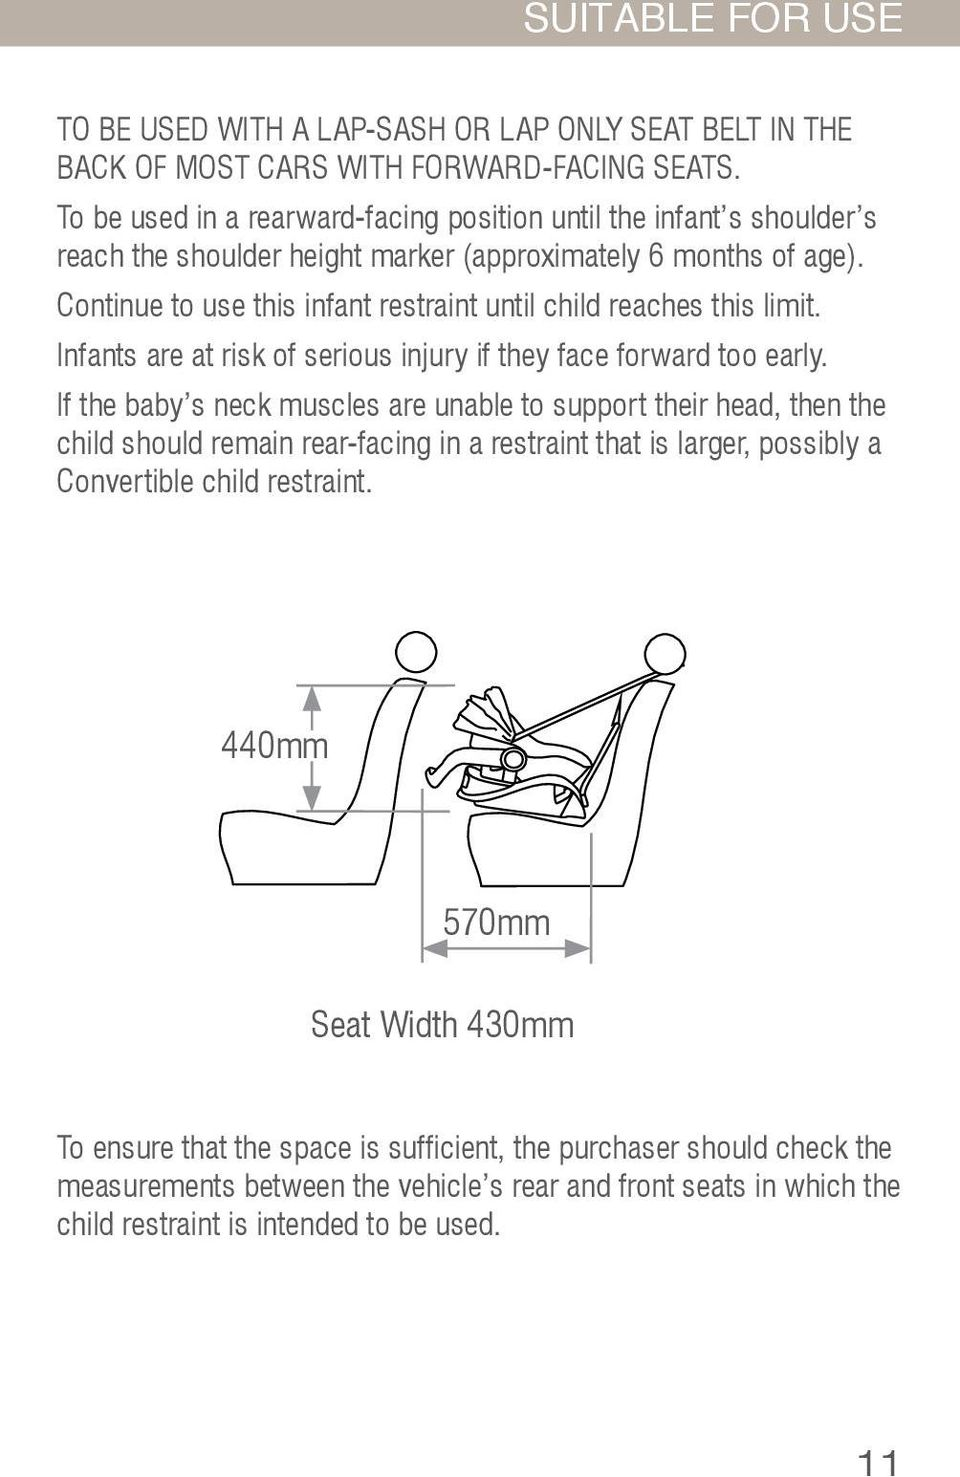 Continue to use this infant restraint until child reaches this limit. Infants are at risk of serious injury if they face forward too early.